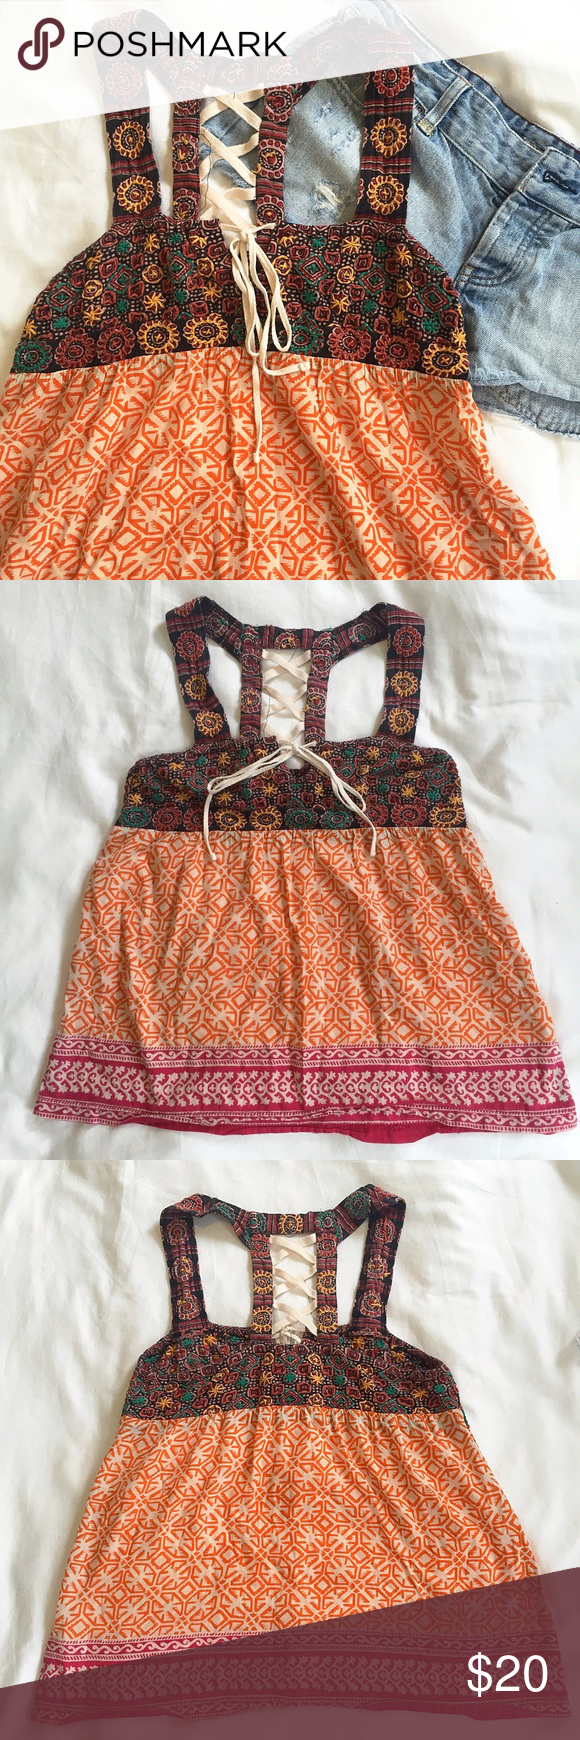 Free People - small - printed tank top, tie detail Free People patterned tank top with front tie and back detail. Multi colored, fun print! Size small. *** 15% off bundles of two or more listings *** Free People Tops Tank Tops